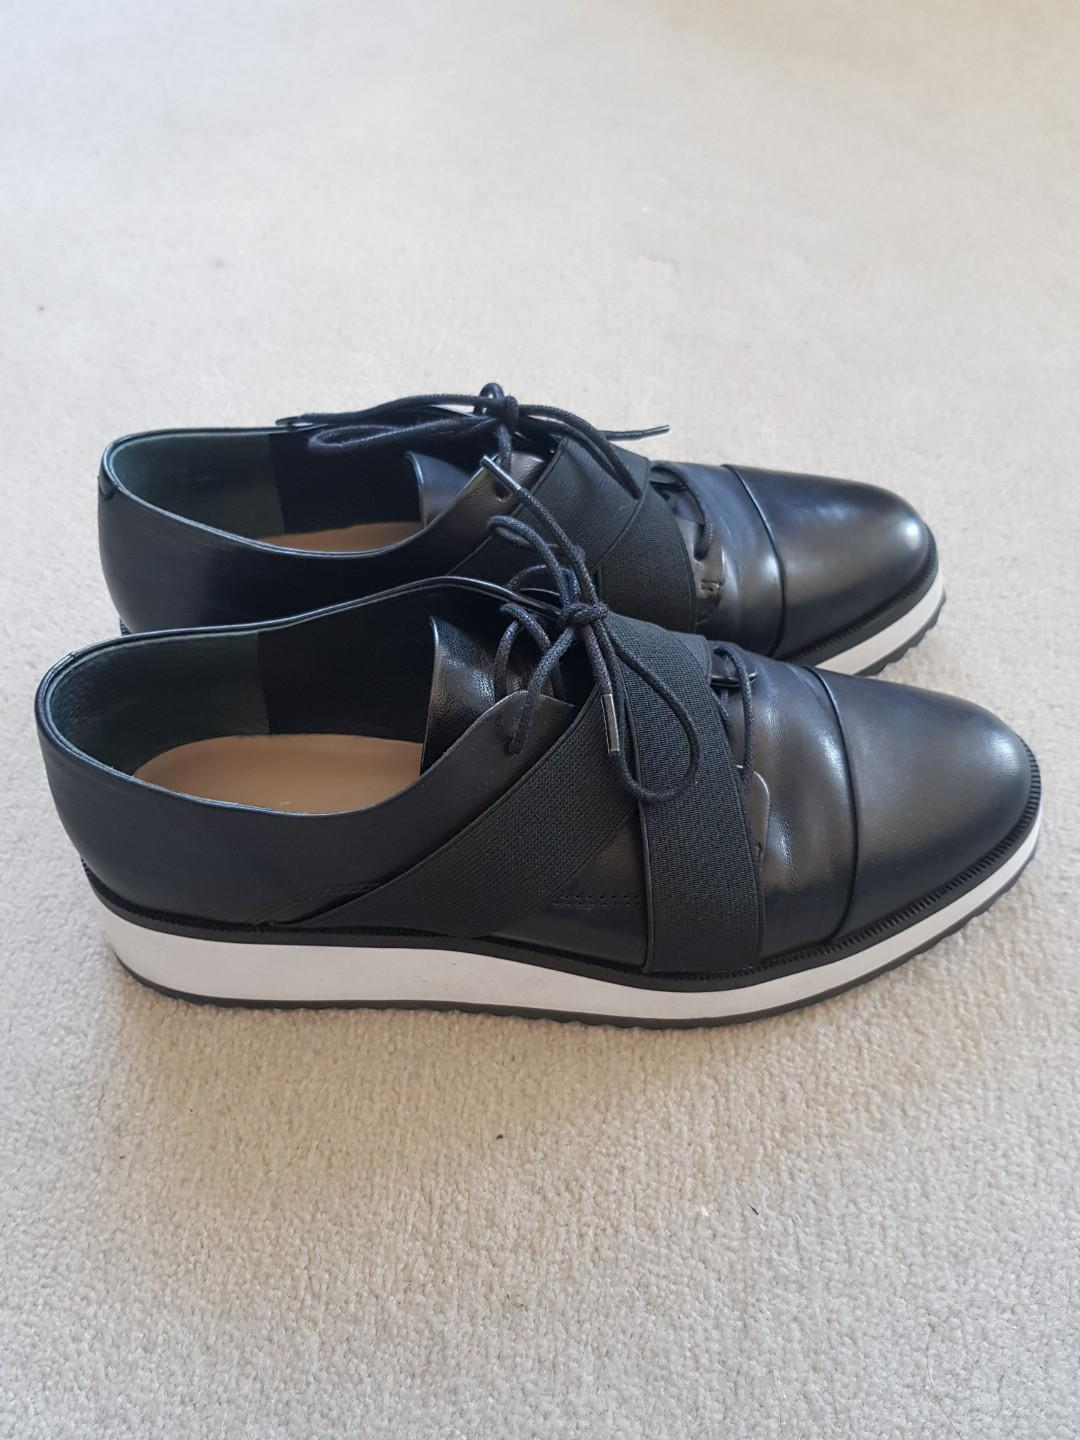 Black leather shoes - Wittner size 39